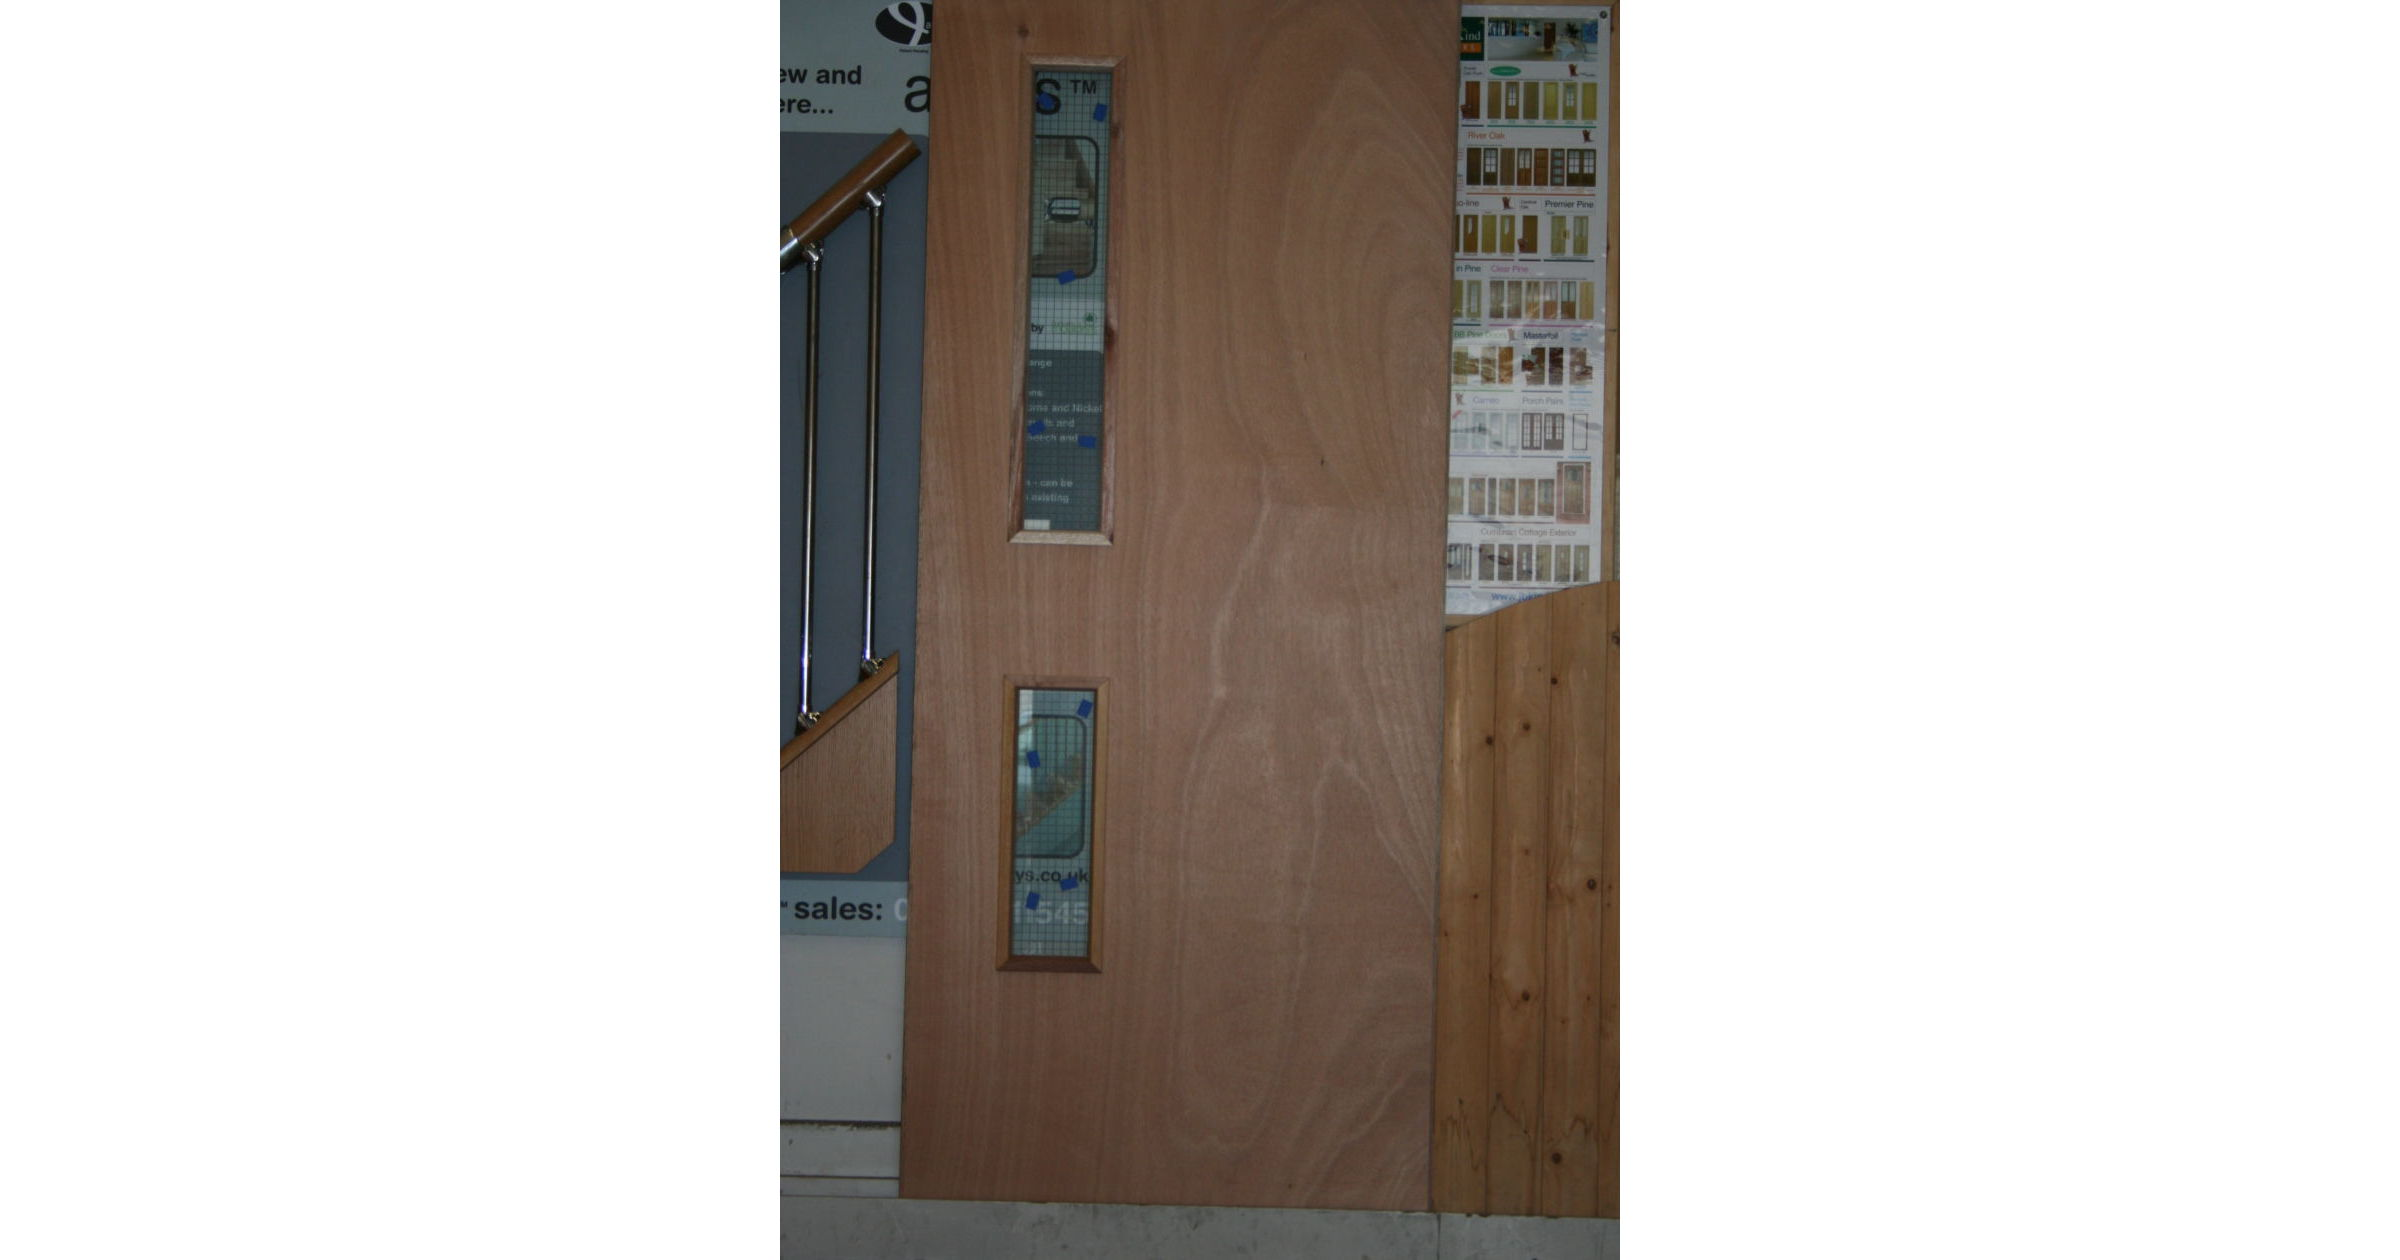 JBK FD30 Ext. Ply 16G Wired Glass DDU Fire Door; Image 1580